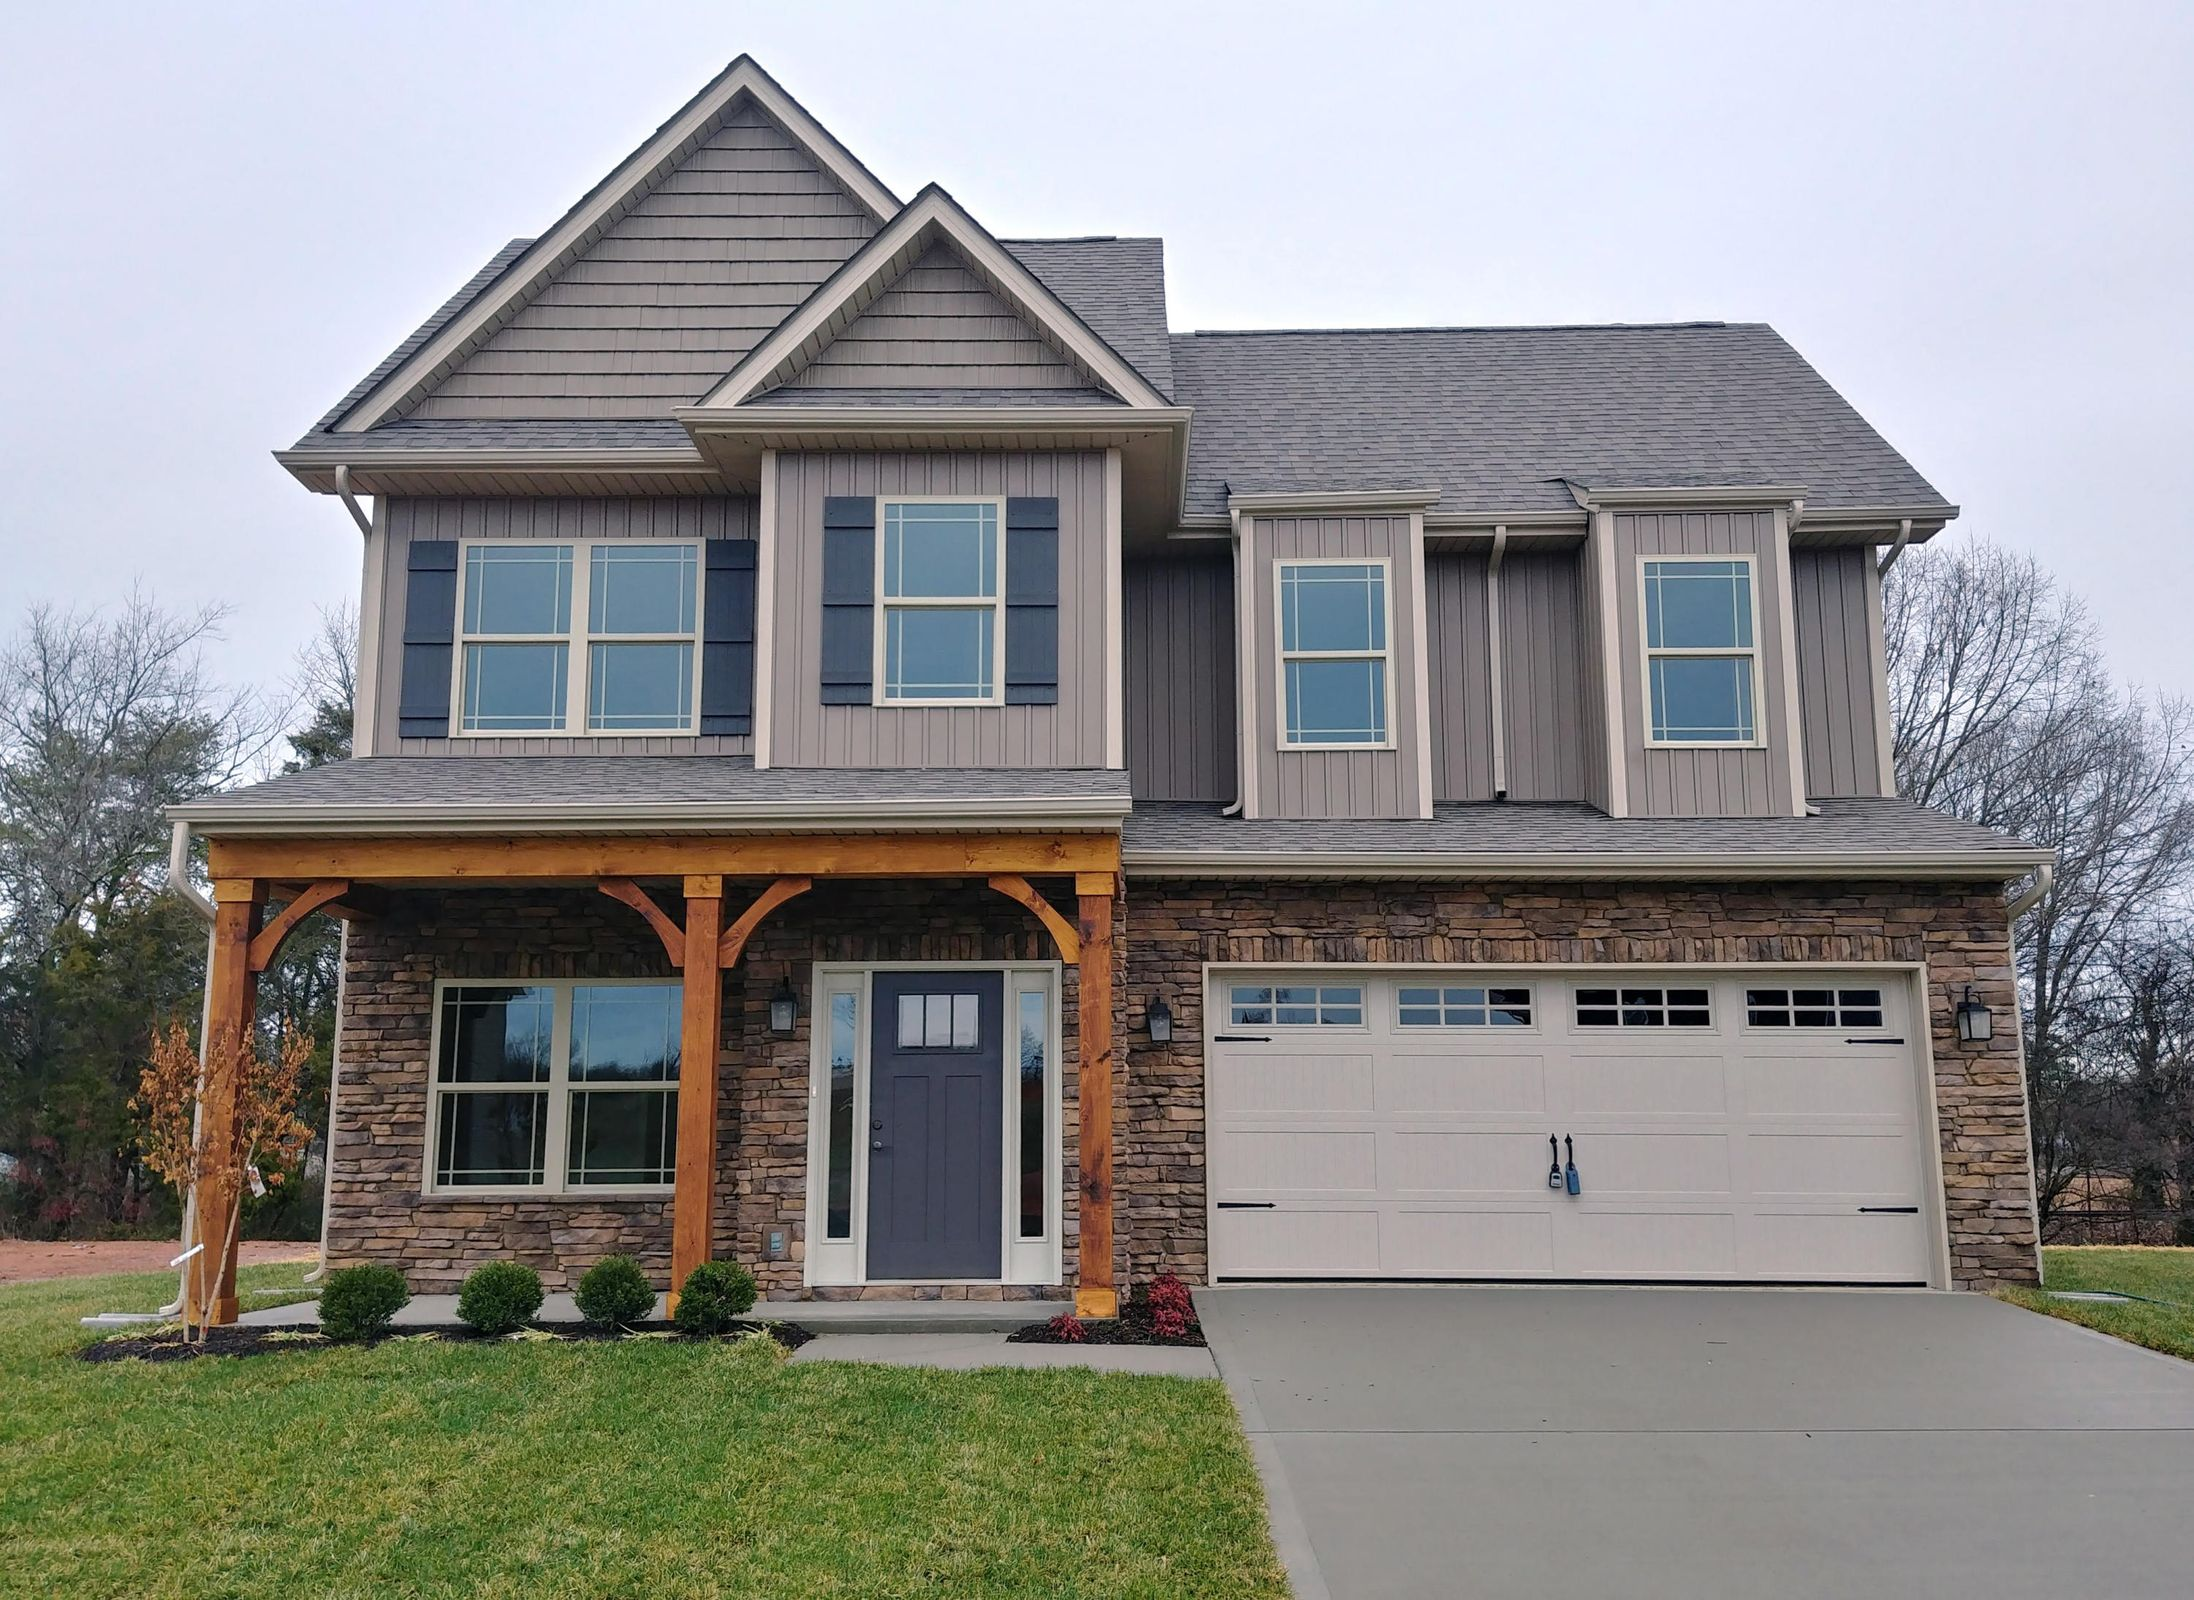 Example of Finished Home